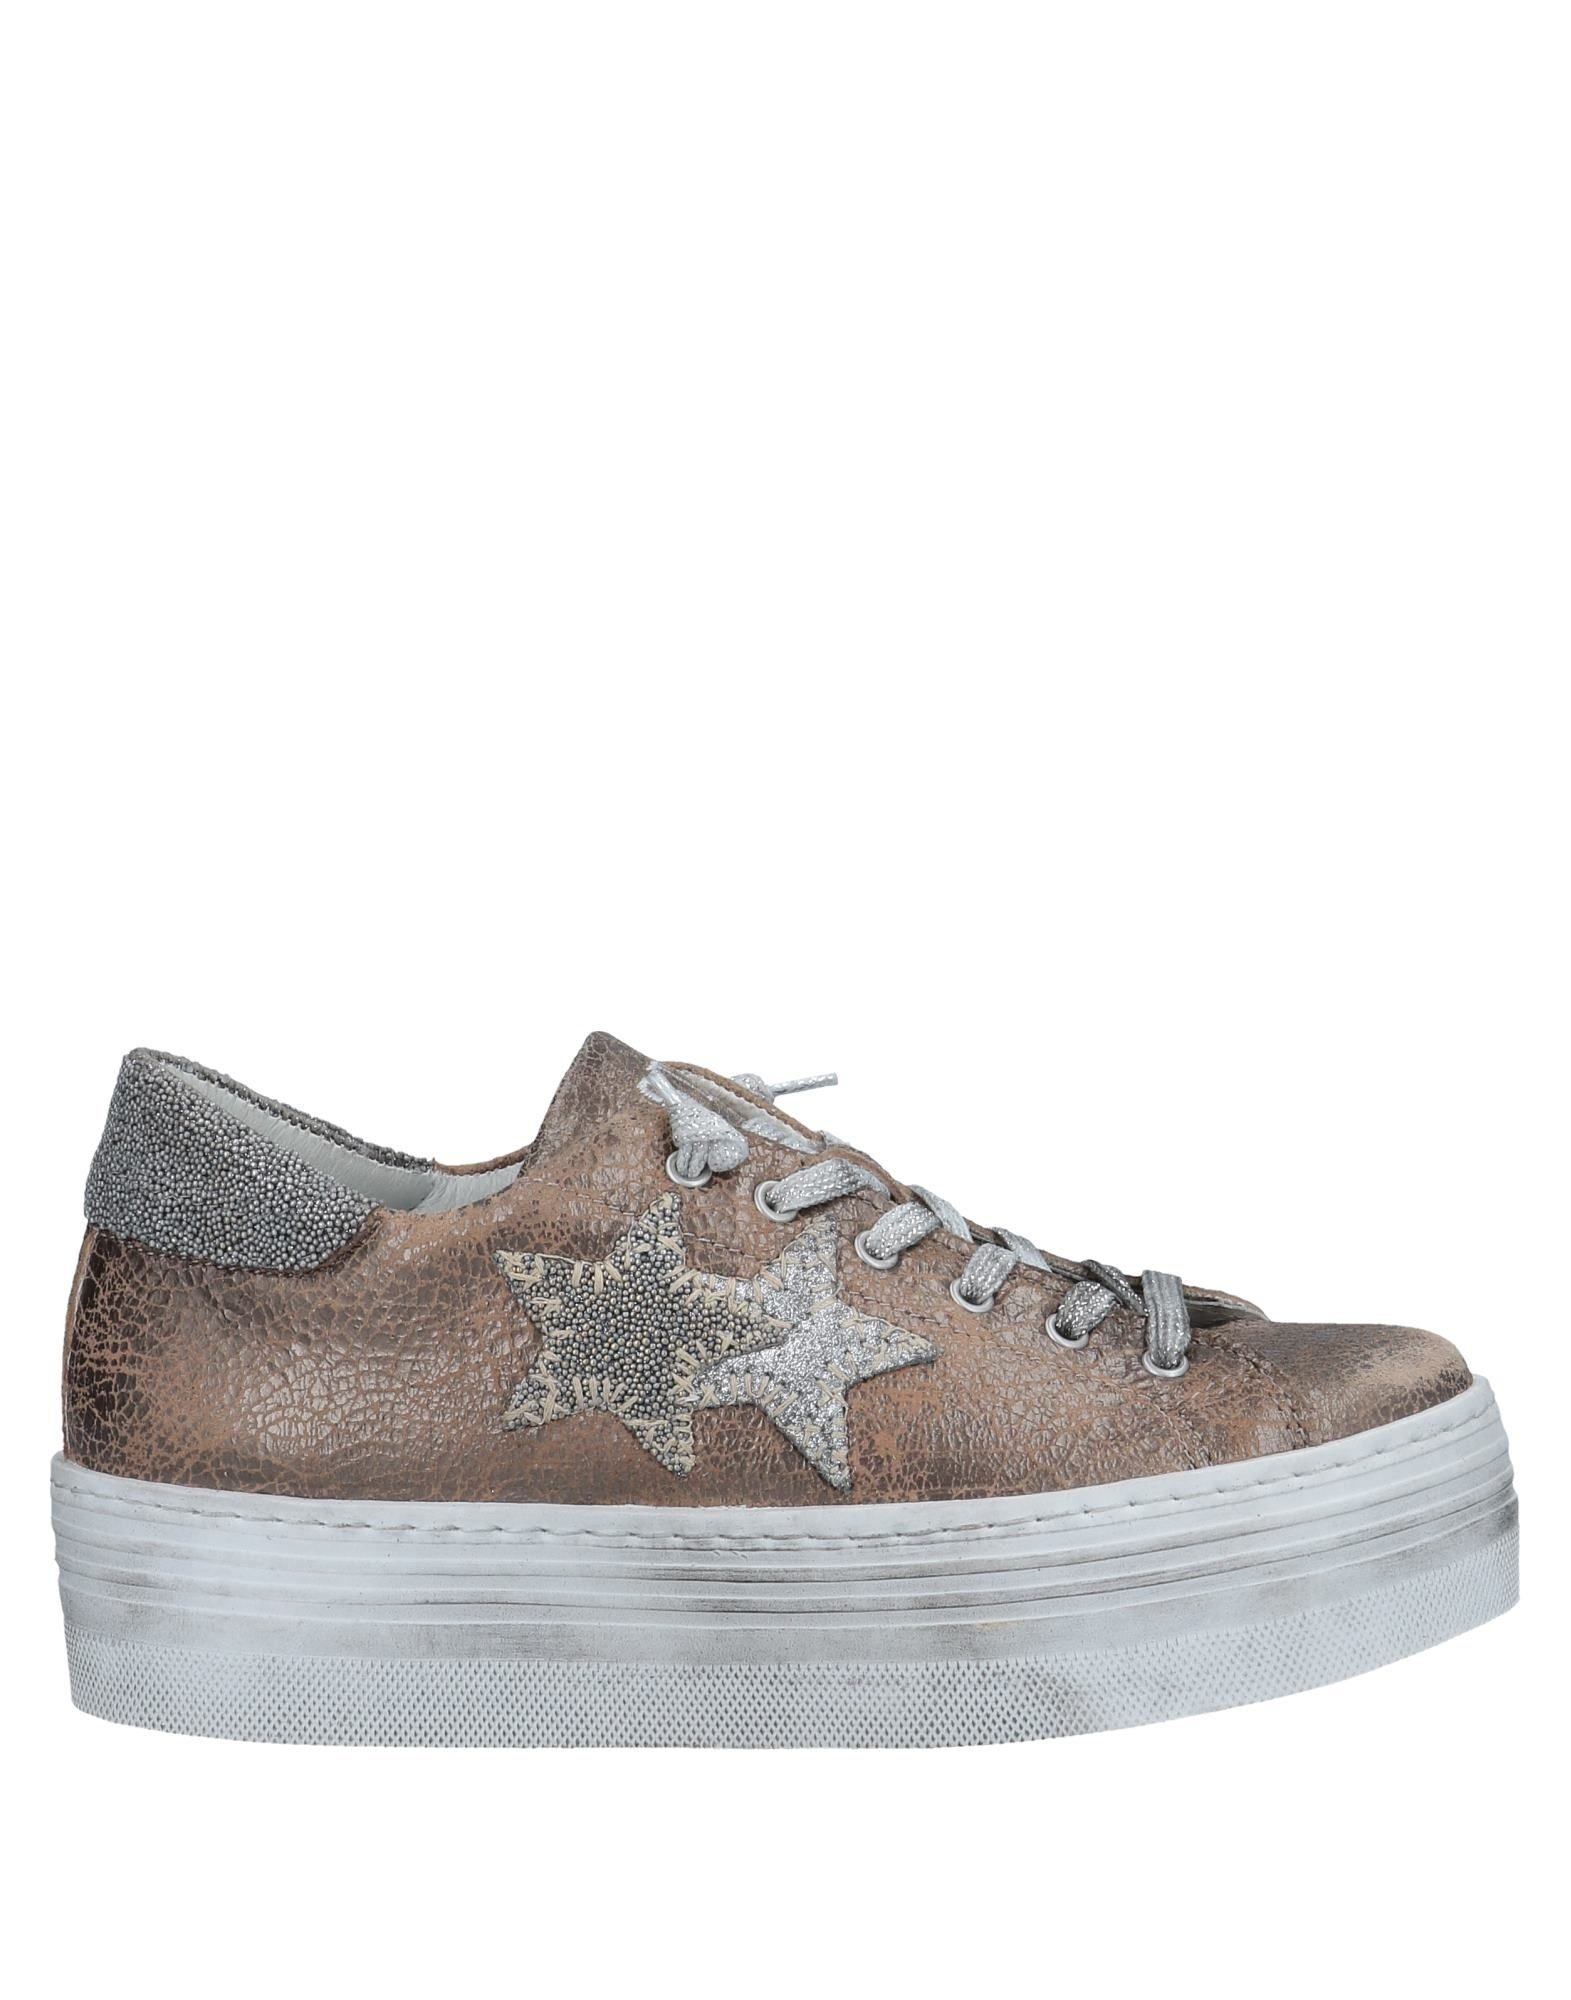 Baskets Baskets Baskets 2Star Femme - Baskets 2Star Bronze Chaussures casual sauvages 6381d6